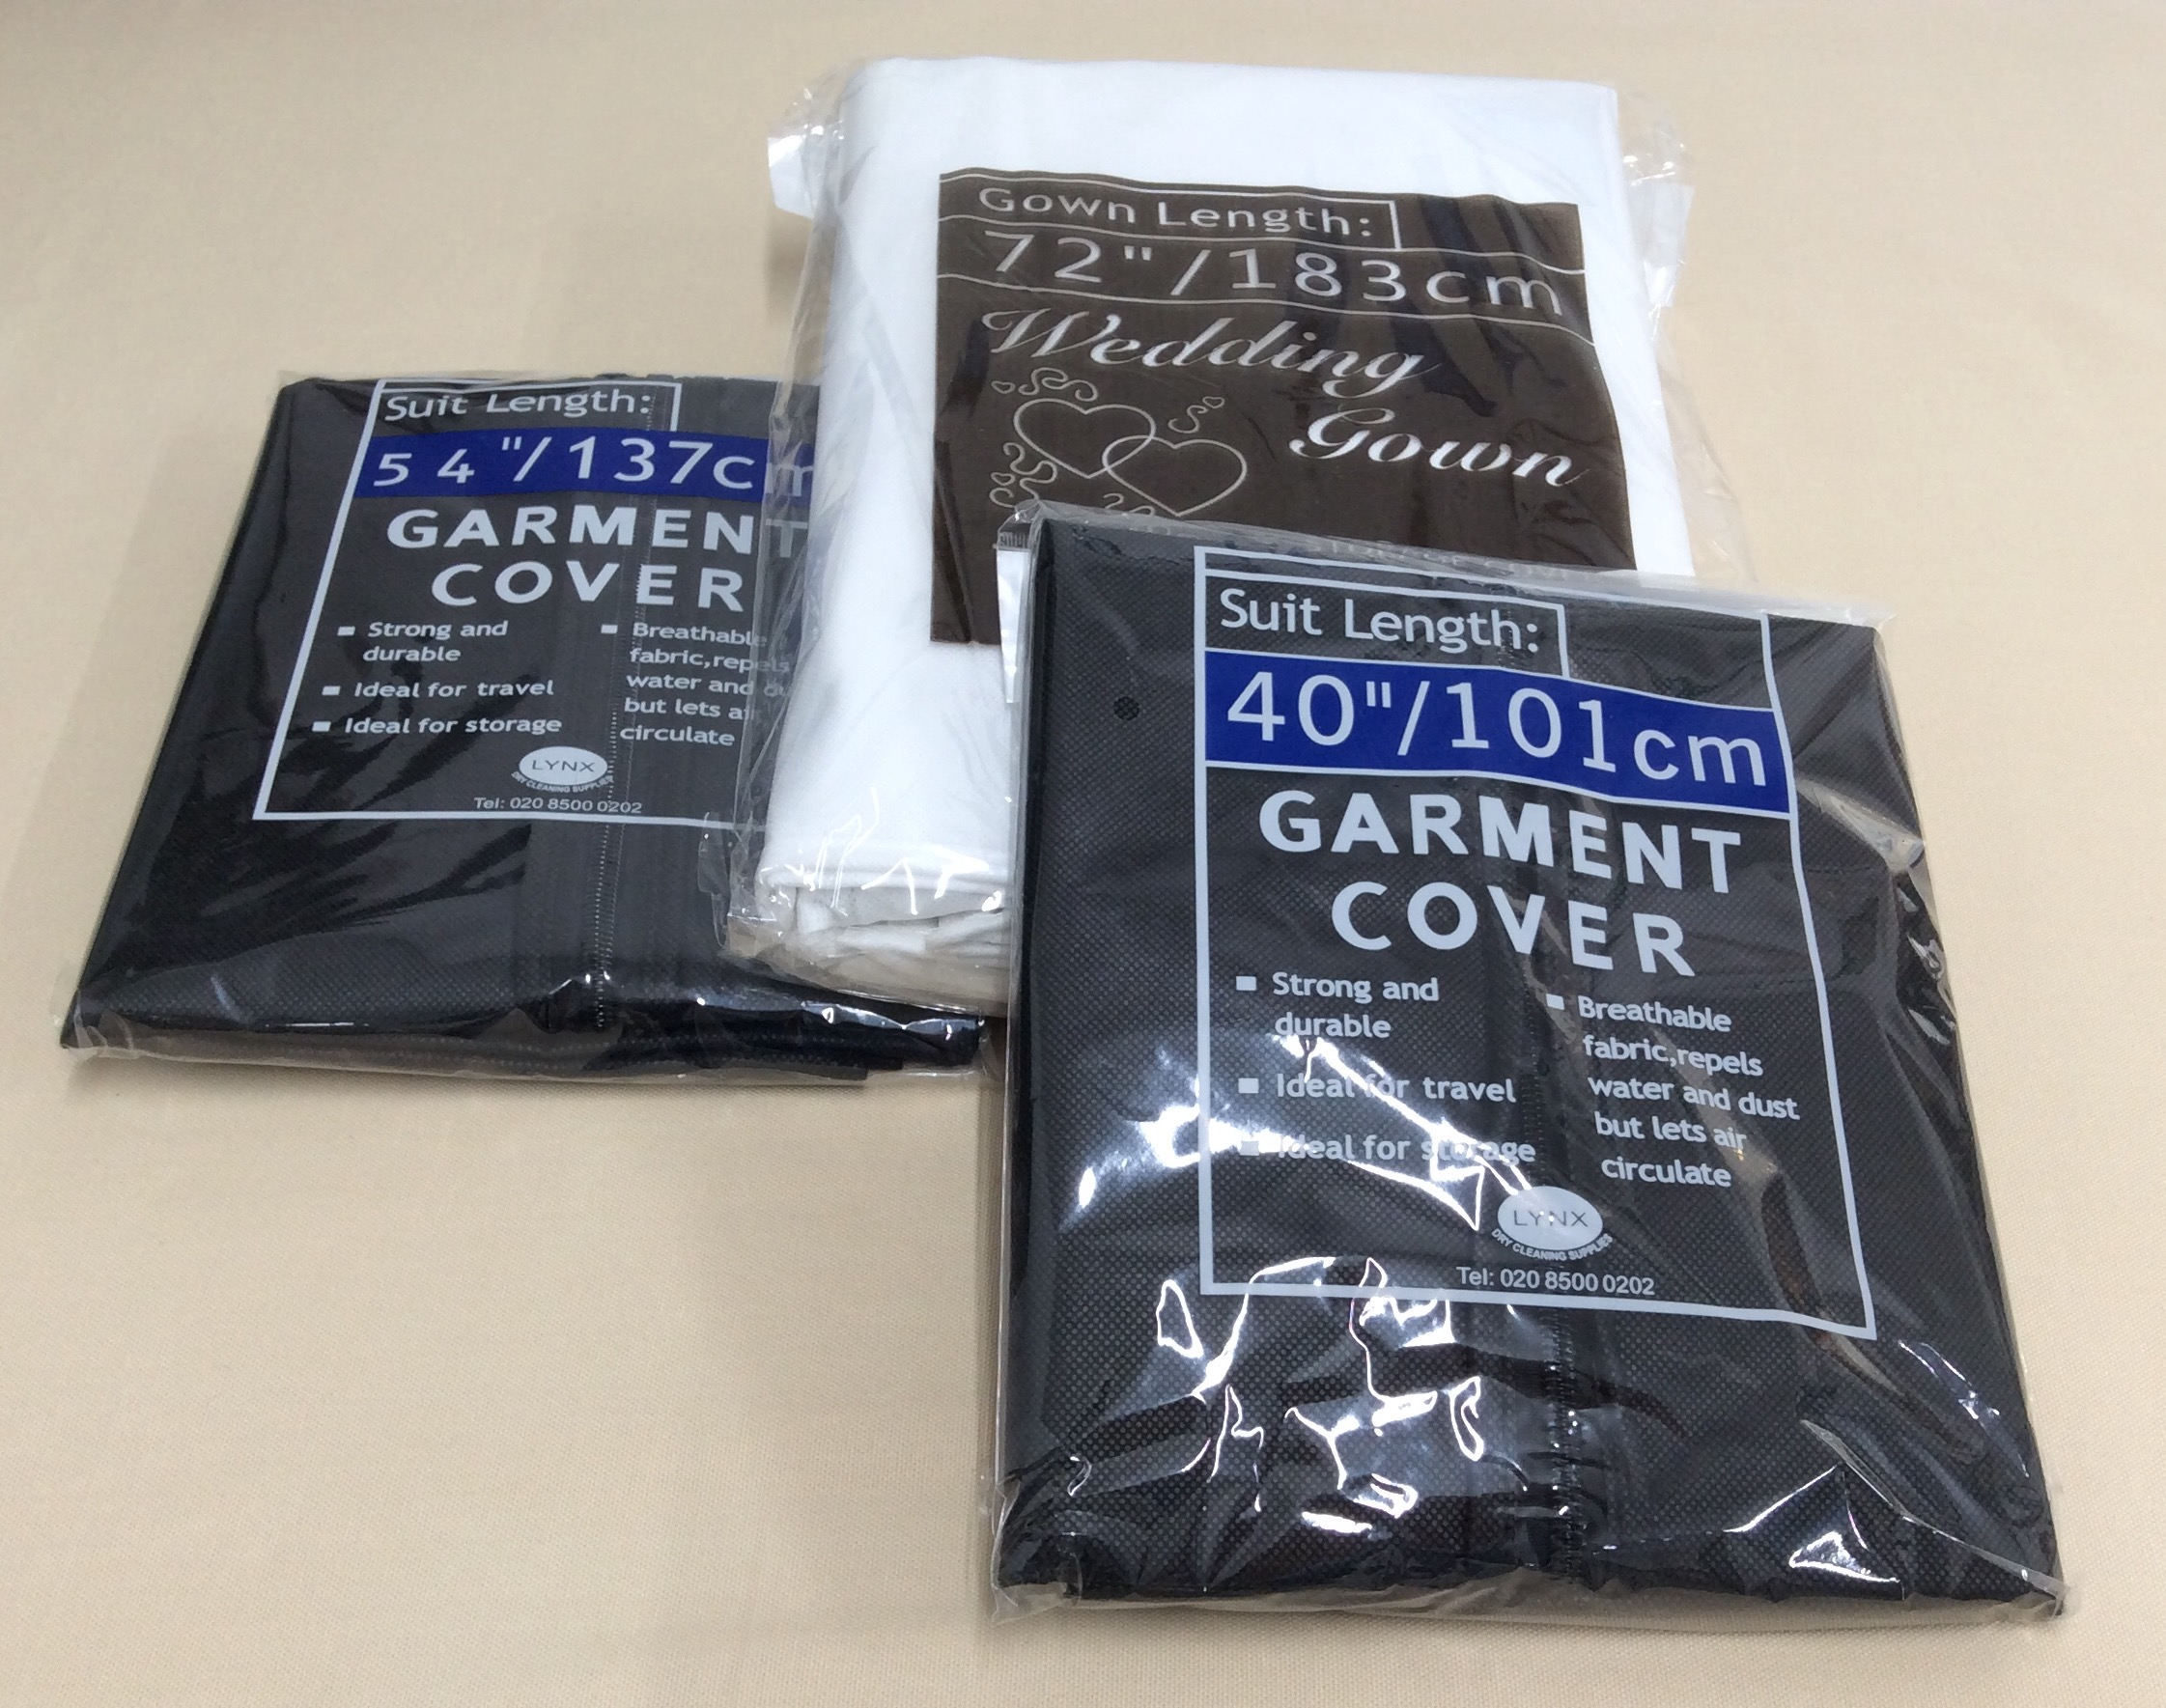 GARMENT COVERS  Suitable for suits, dresses, full length gowns and wedding dresses.